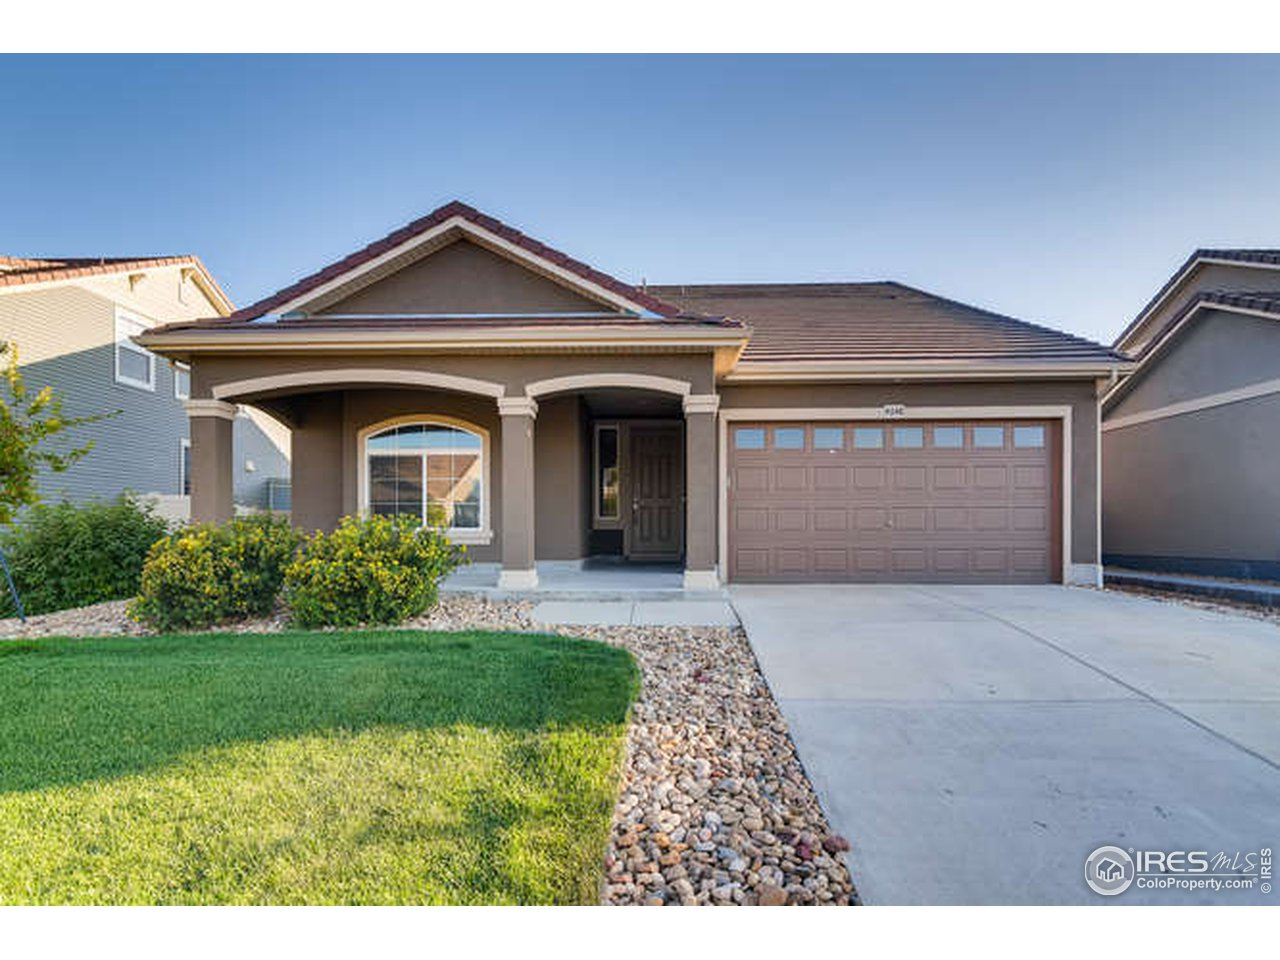 Welcome to your ranch plan, low maintenance home!